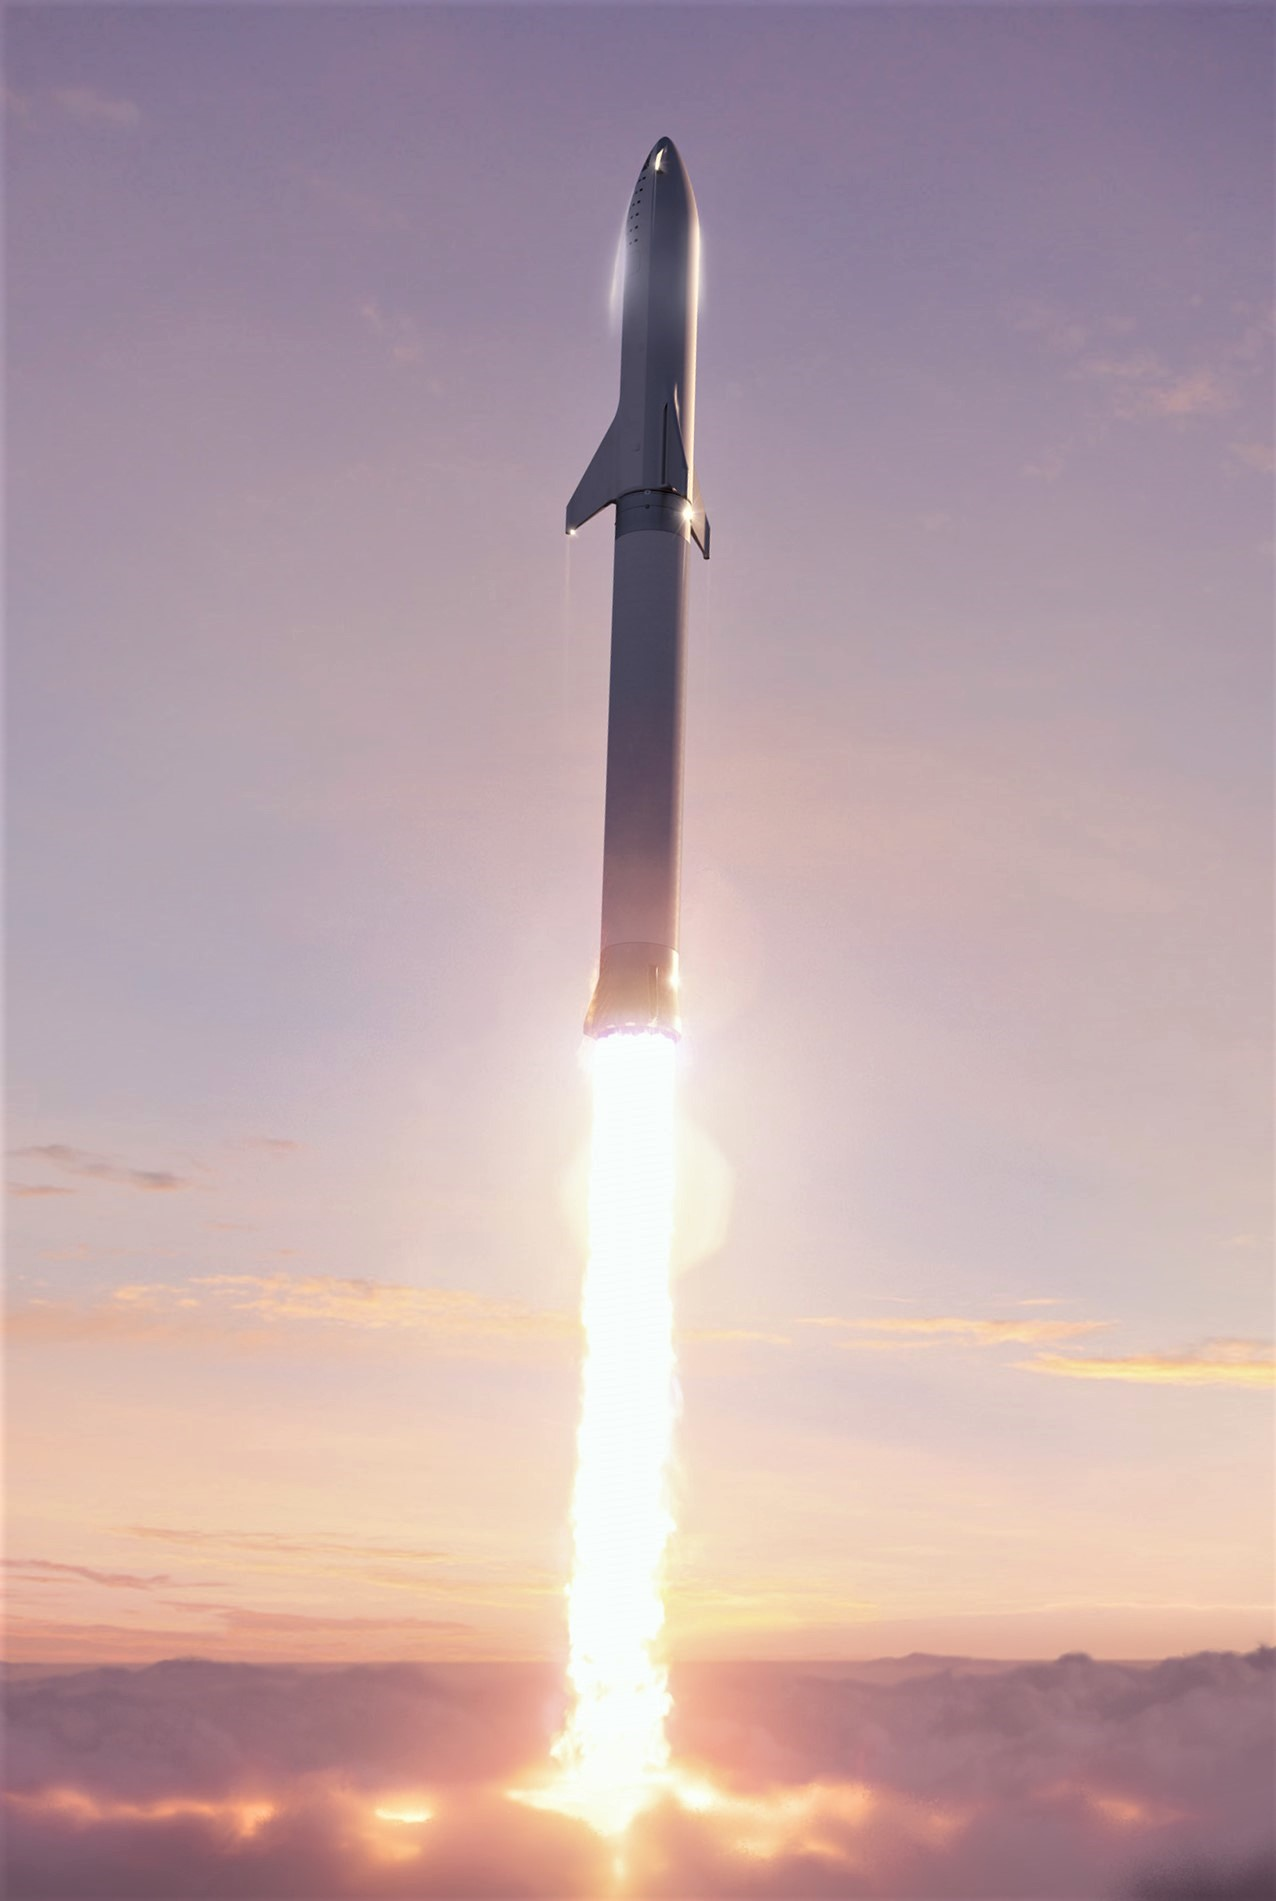 BFR 2018 through the clouds (SpaceX)